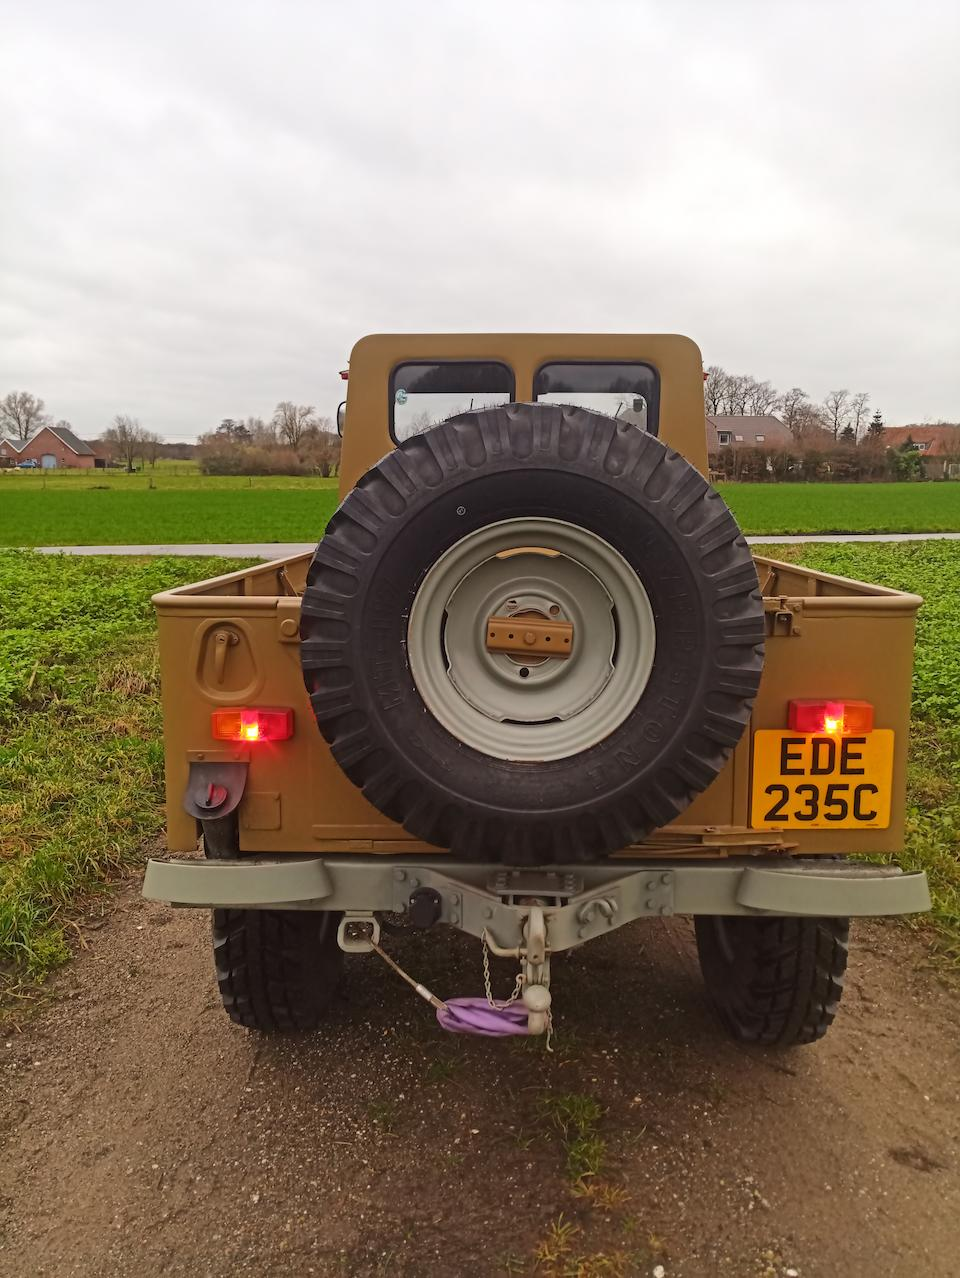 1965 Volvo L3314-H-T 'Laplander' 4x4 Military Vehicle  Chassis no. 3391